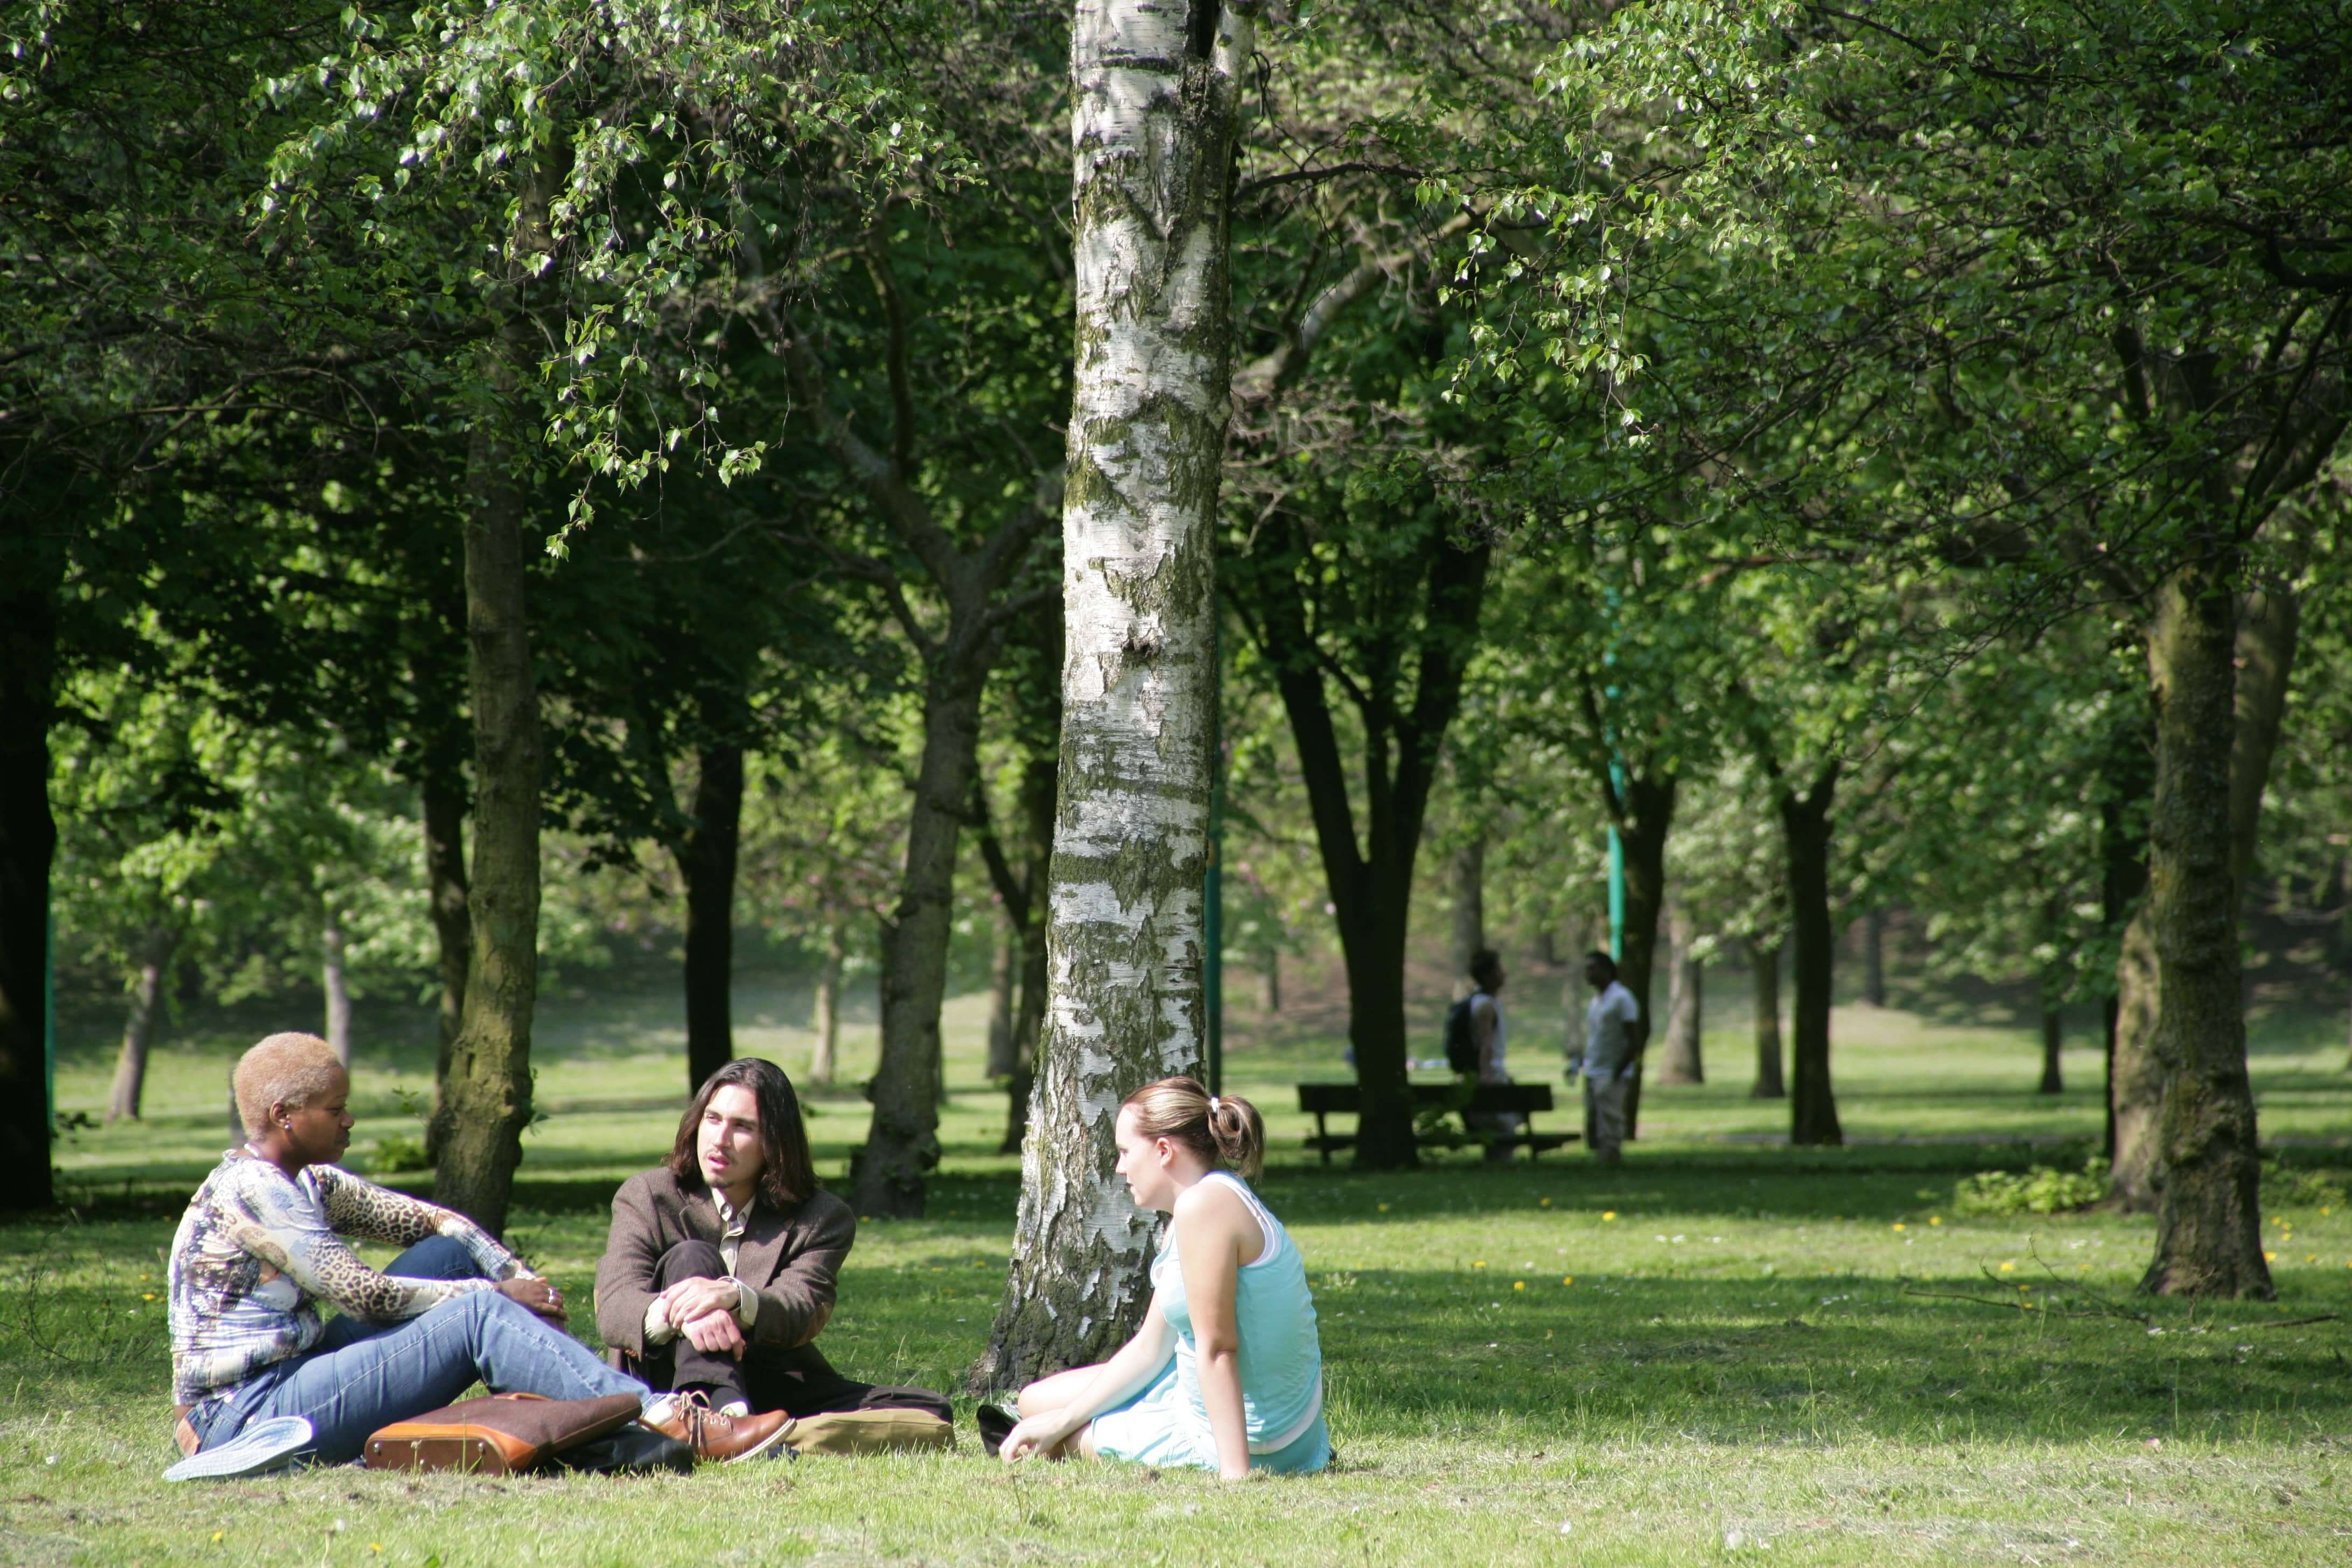 Students sitting within Peel Park, Salford